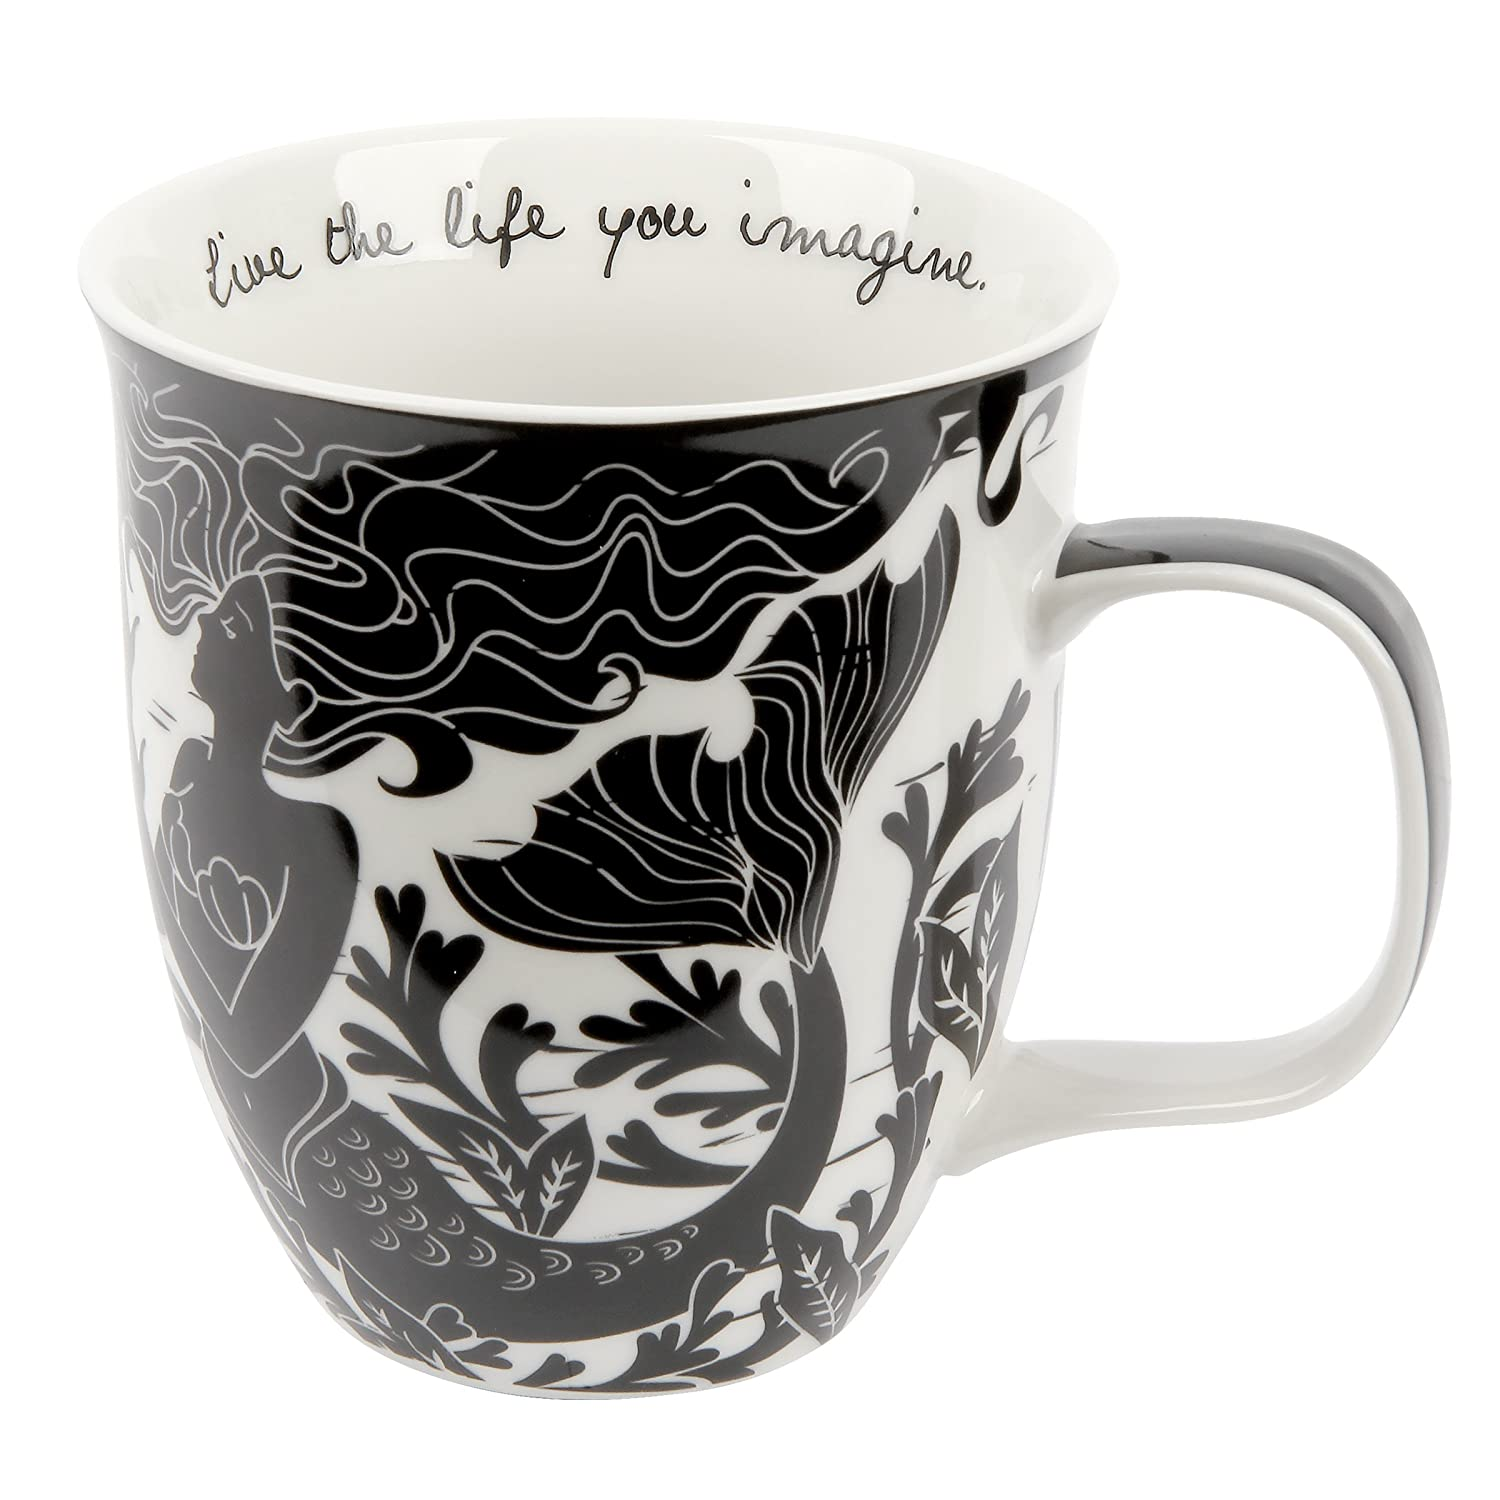 Karma Gifts Boho Black and White Mug, Mermaid